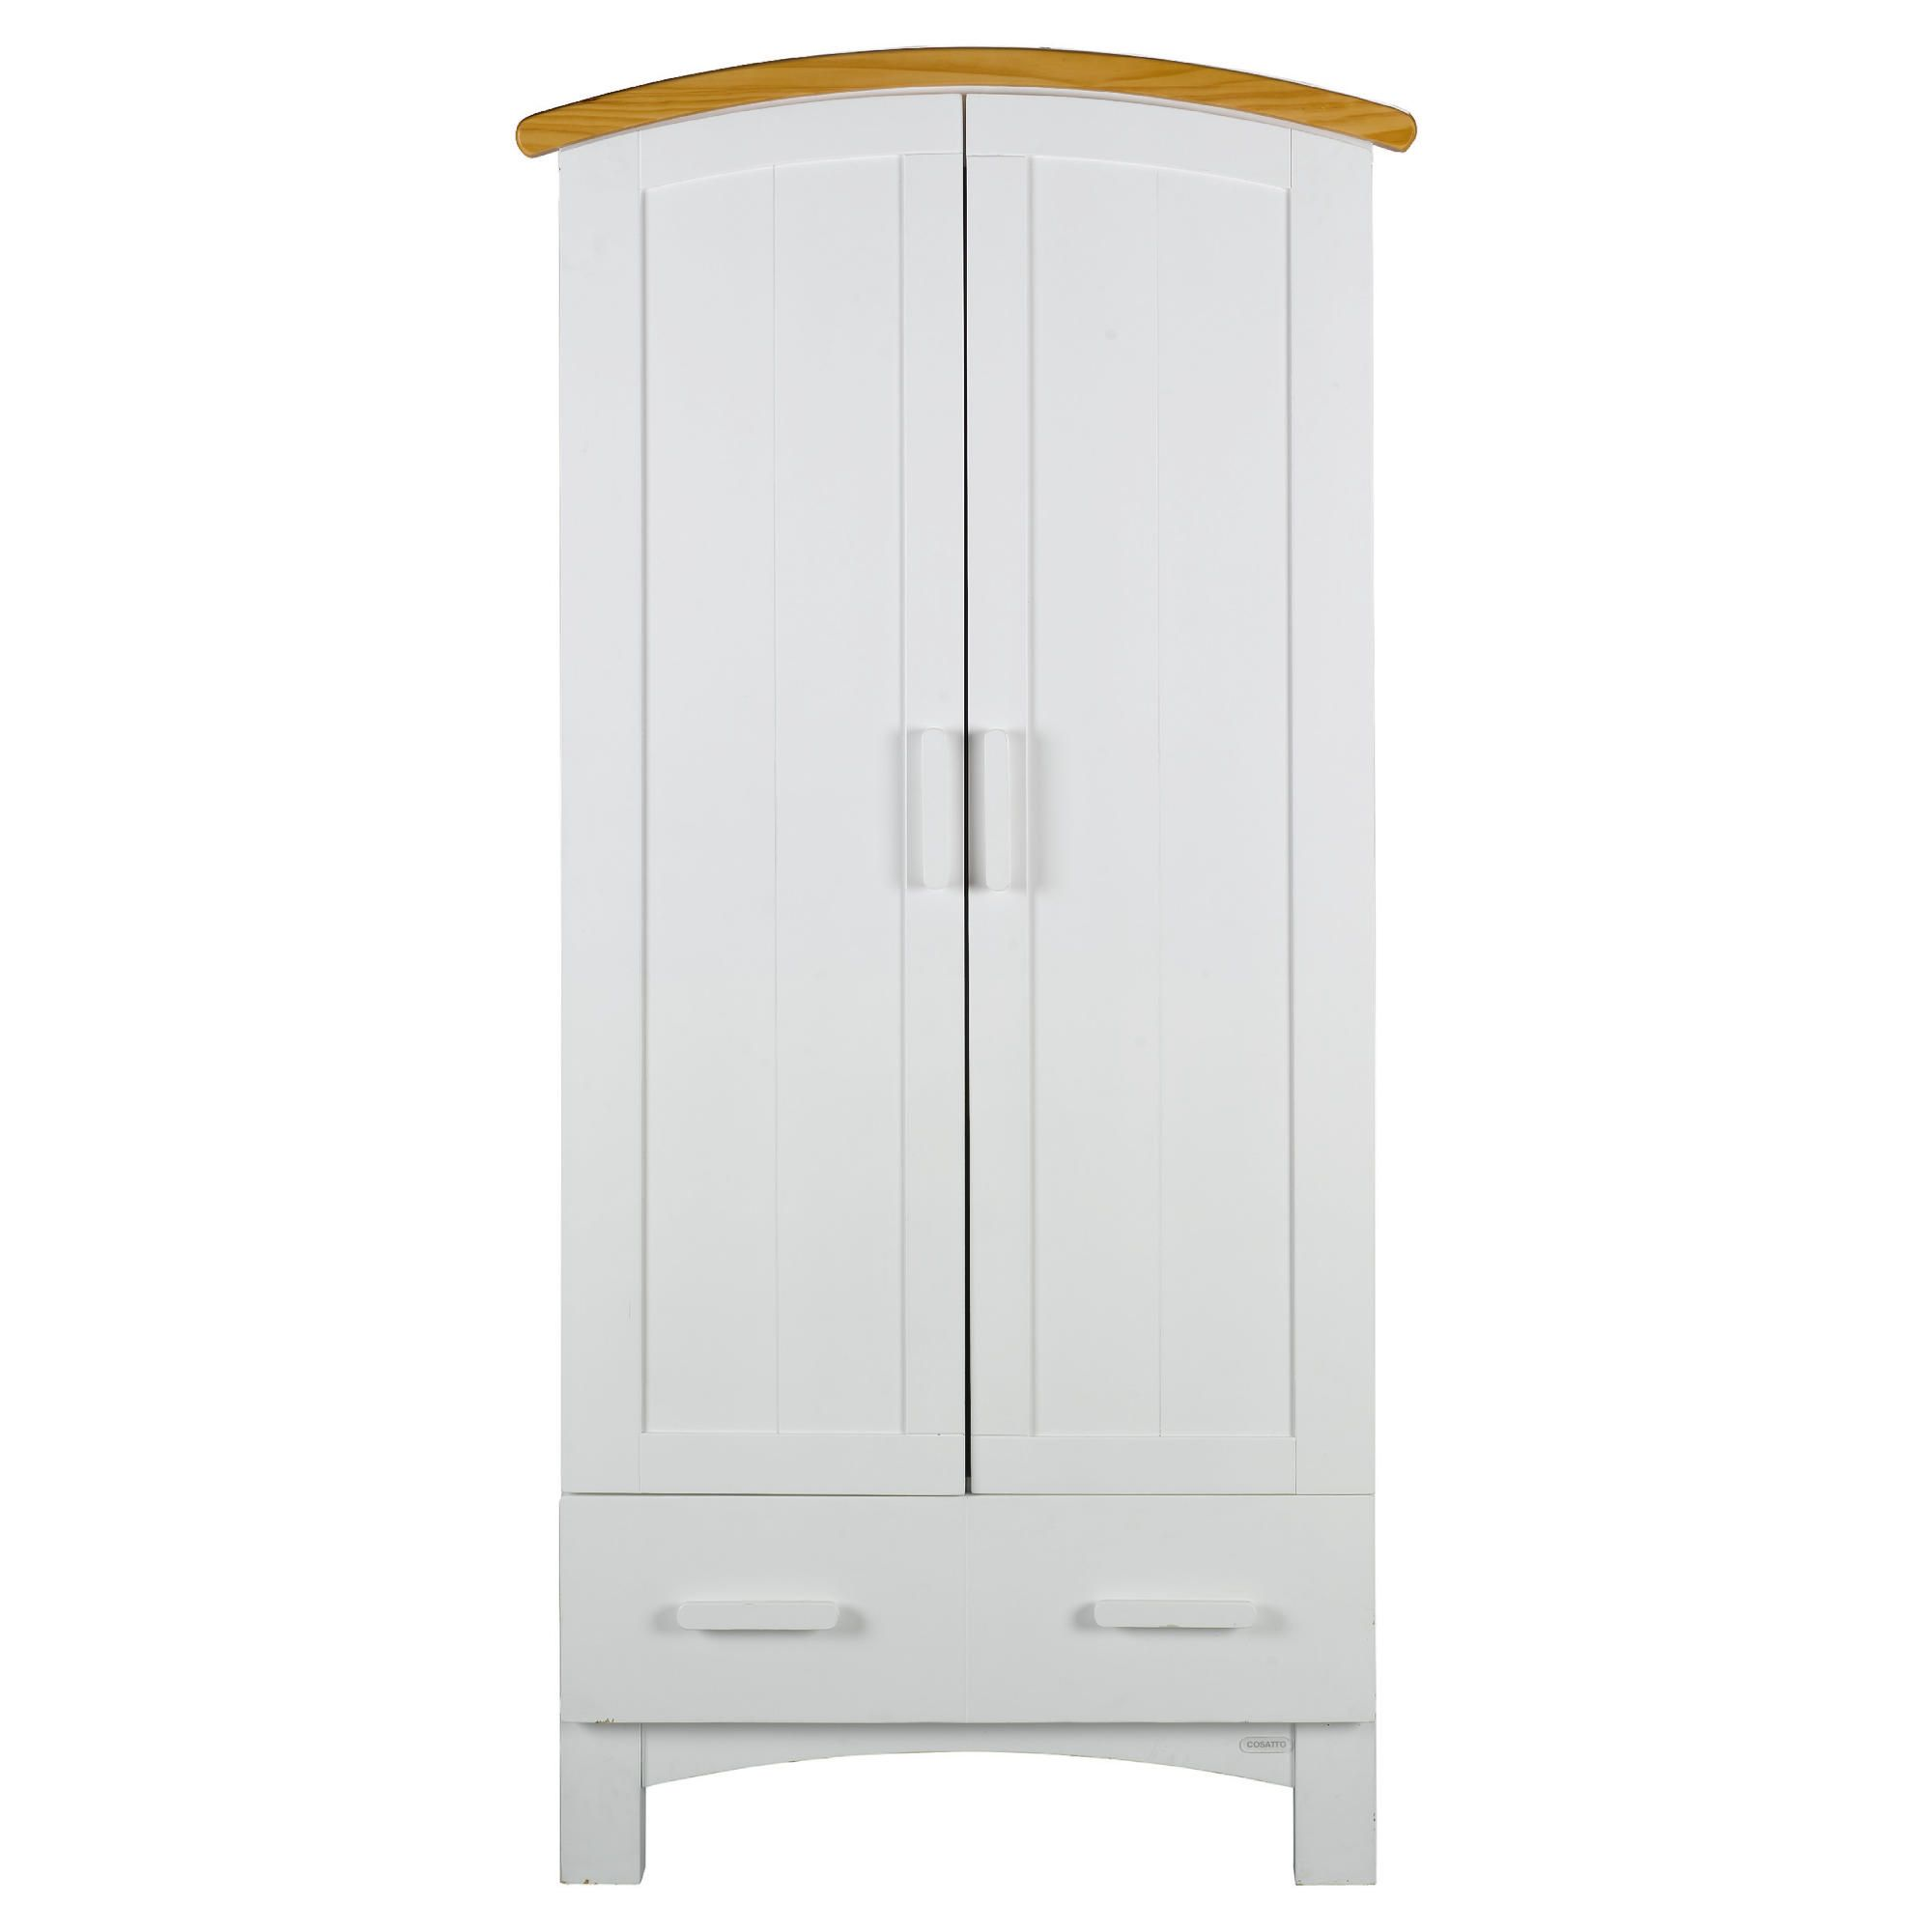 Cosatto Hogarth Wardrobe, White & Oak at Tescos Direct